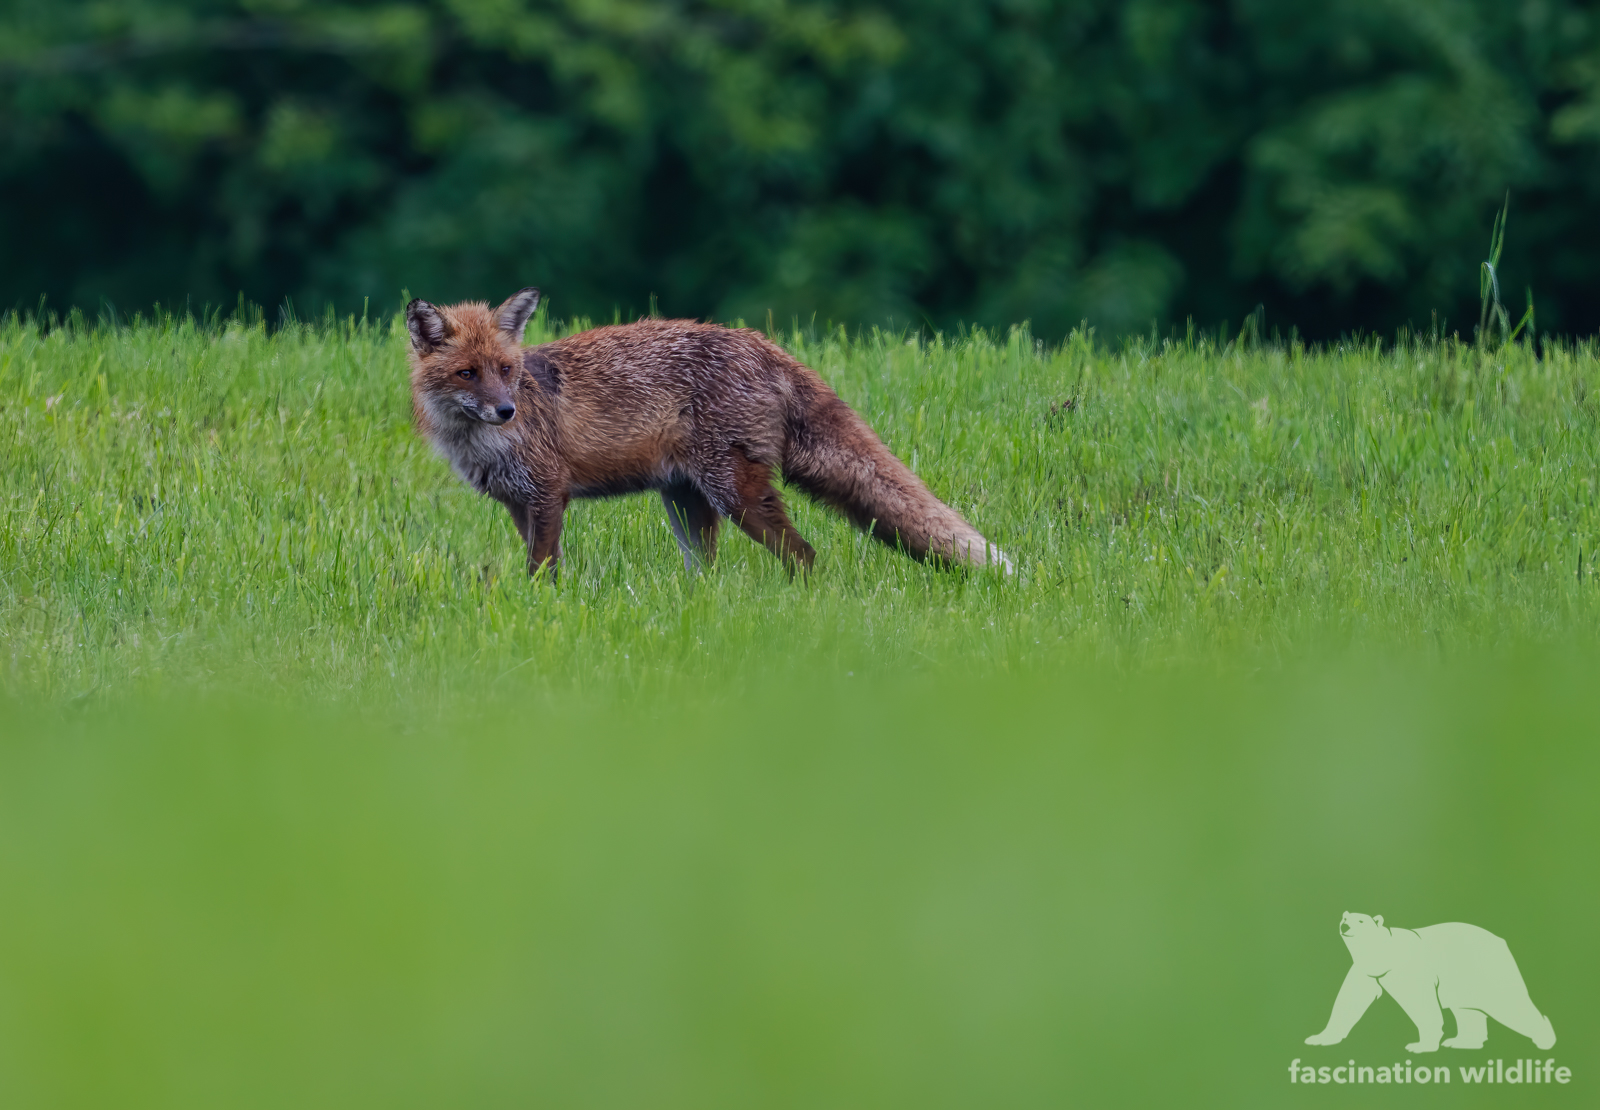 red fox2-gigapixel-scale-4x